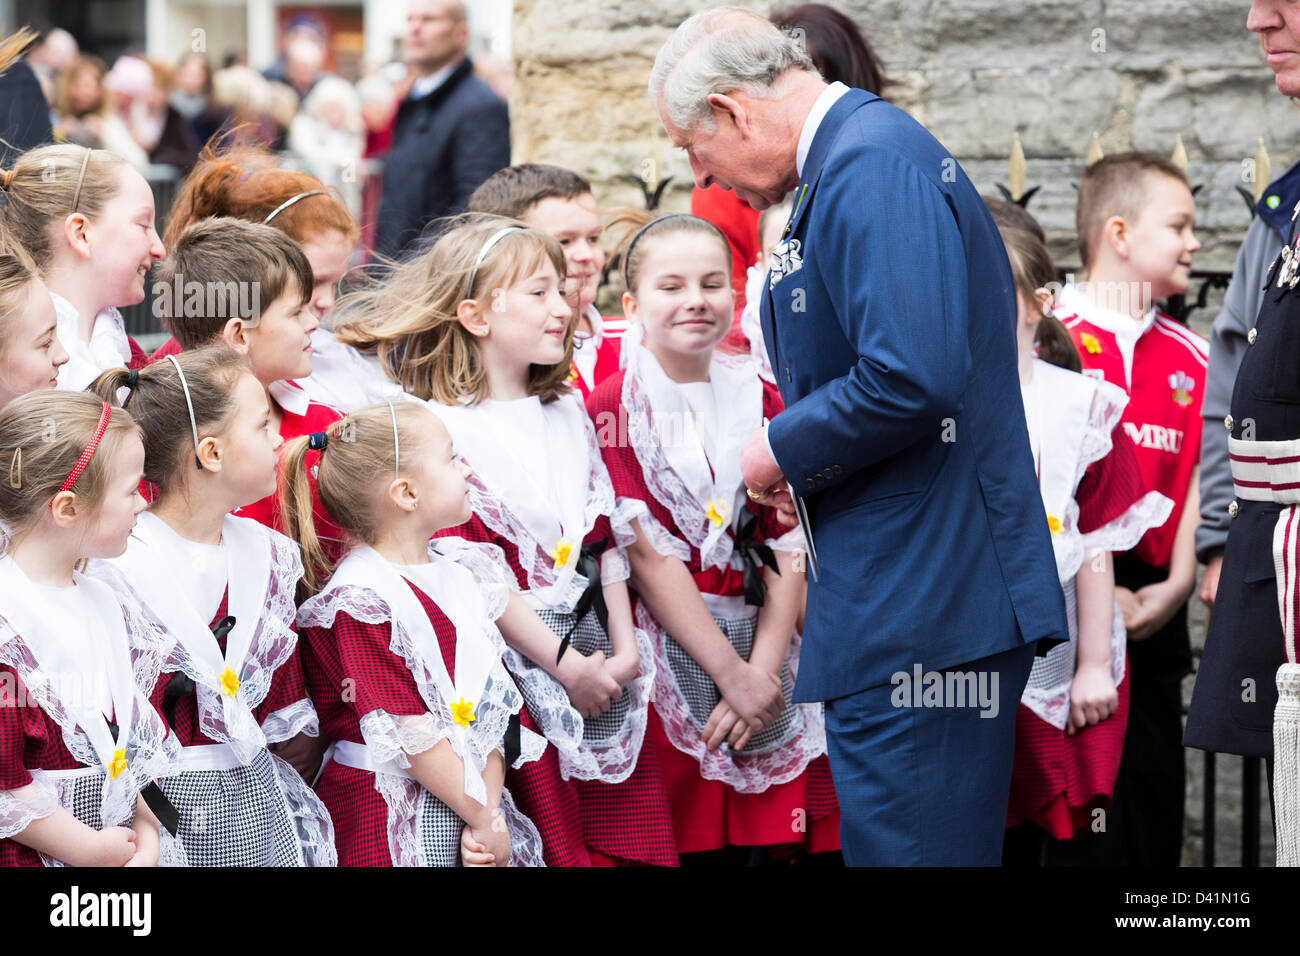 Prince charles greets children in welsh national dress on st Davids day in Cardiff. Stock Photo